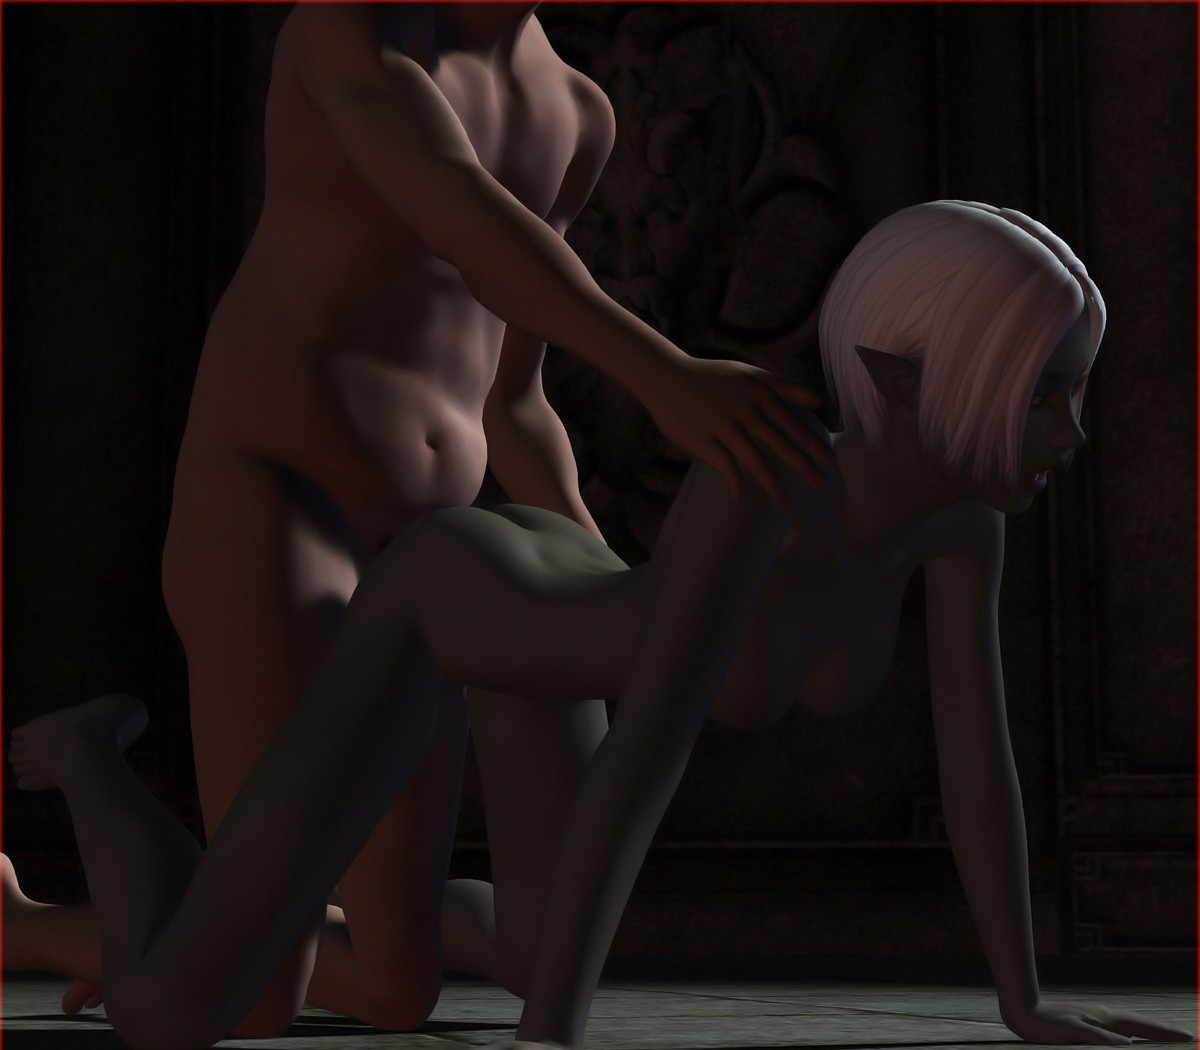 House elf sex animation adult picture